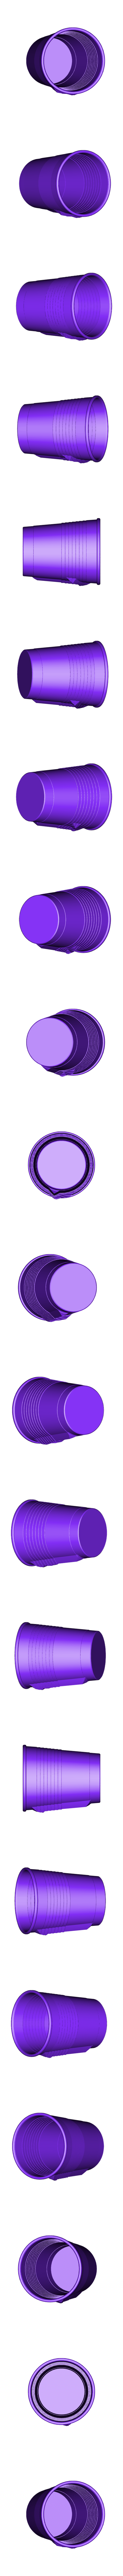 Cup_1.stl Download free STL file Beer Pong Cup / Trophy (3 Parts or single part) • 3D printable model, xTremePower